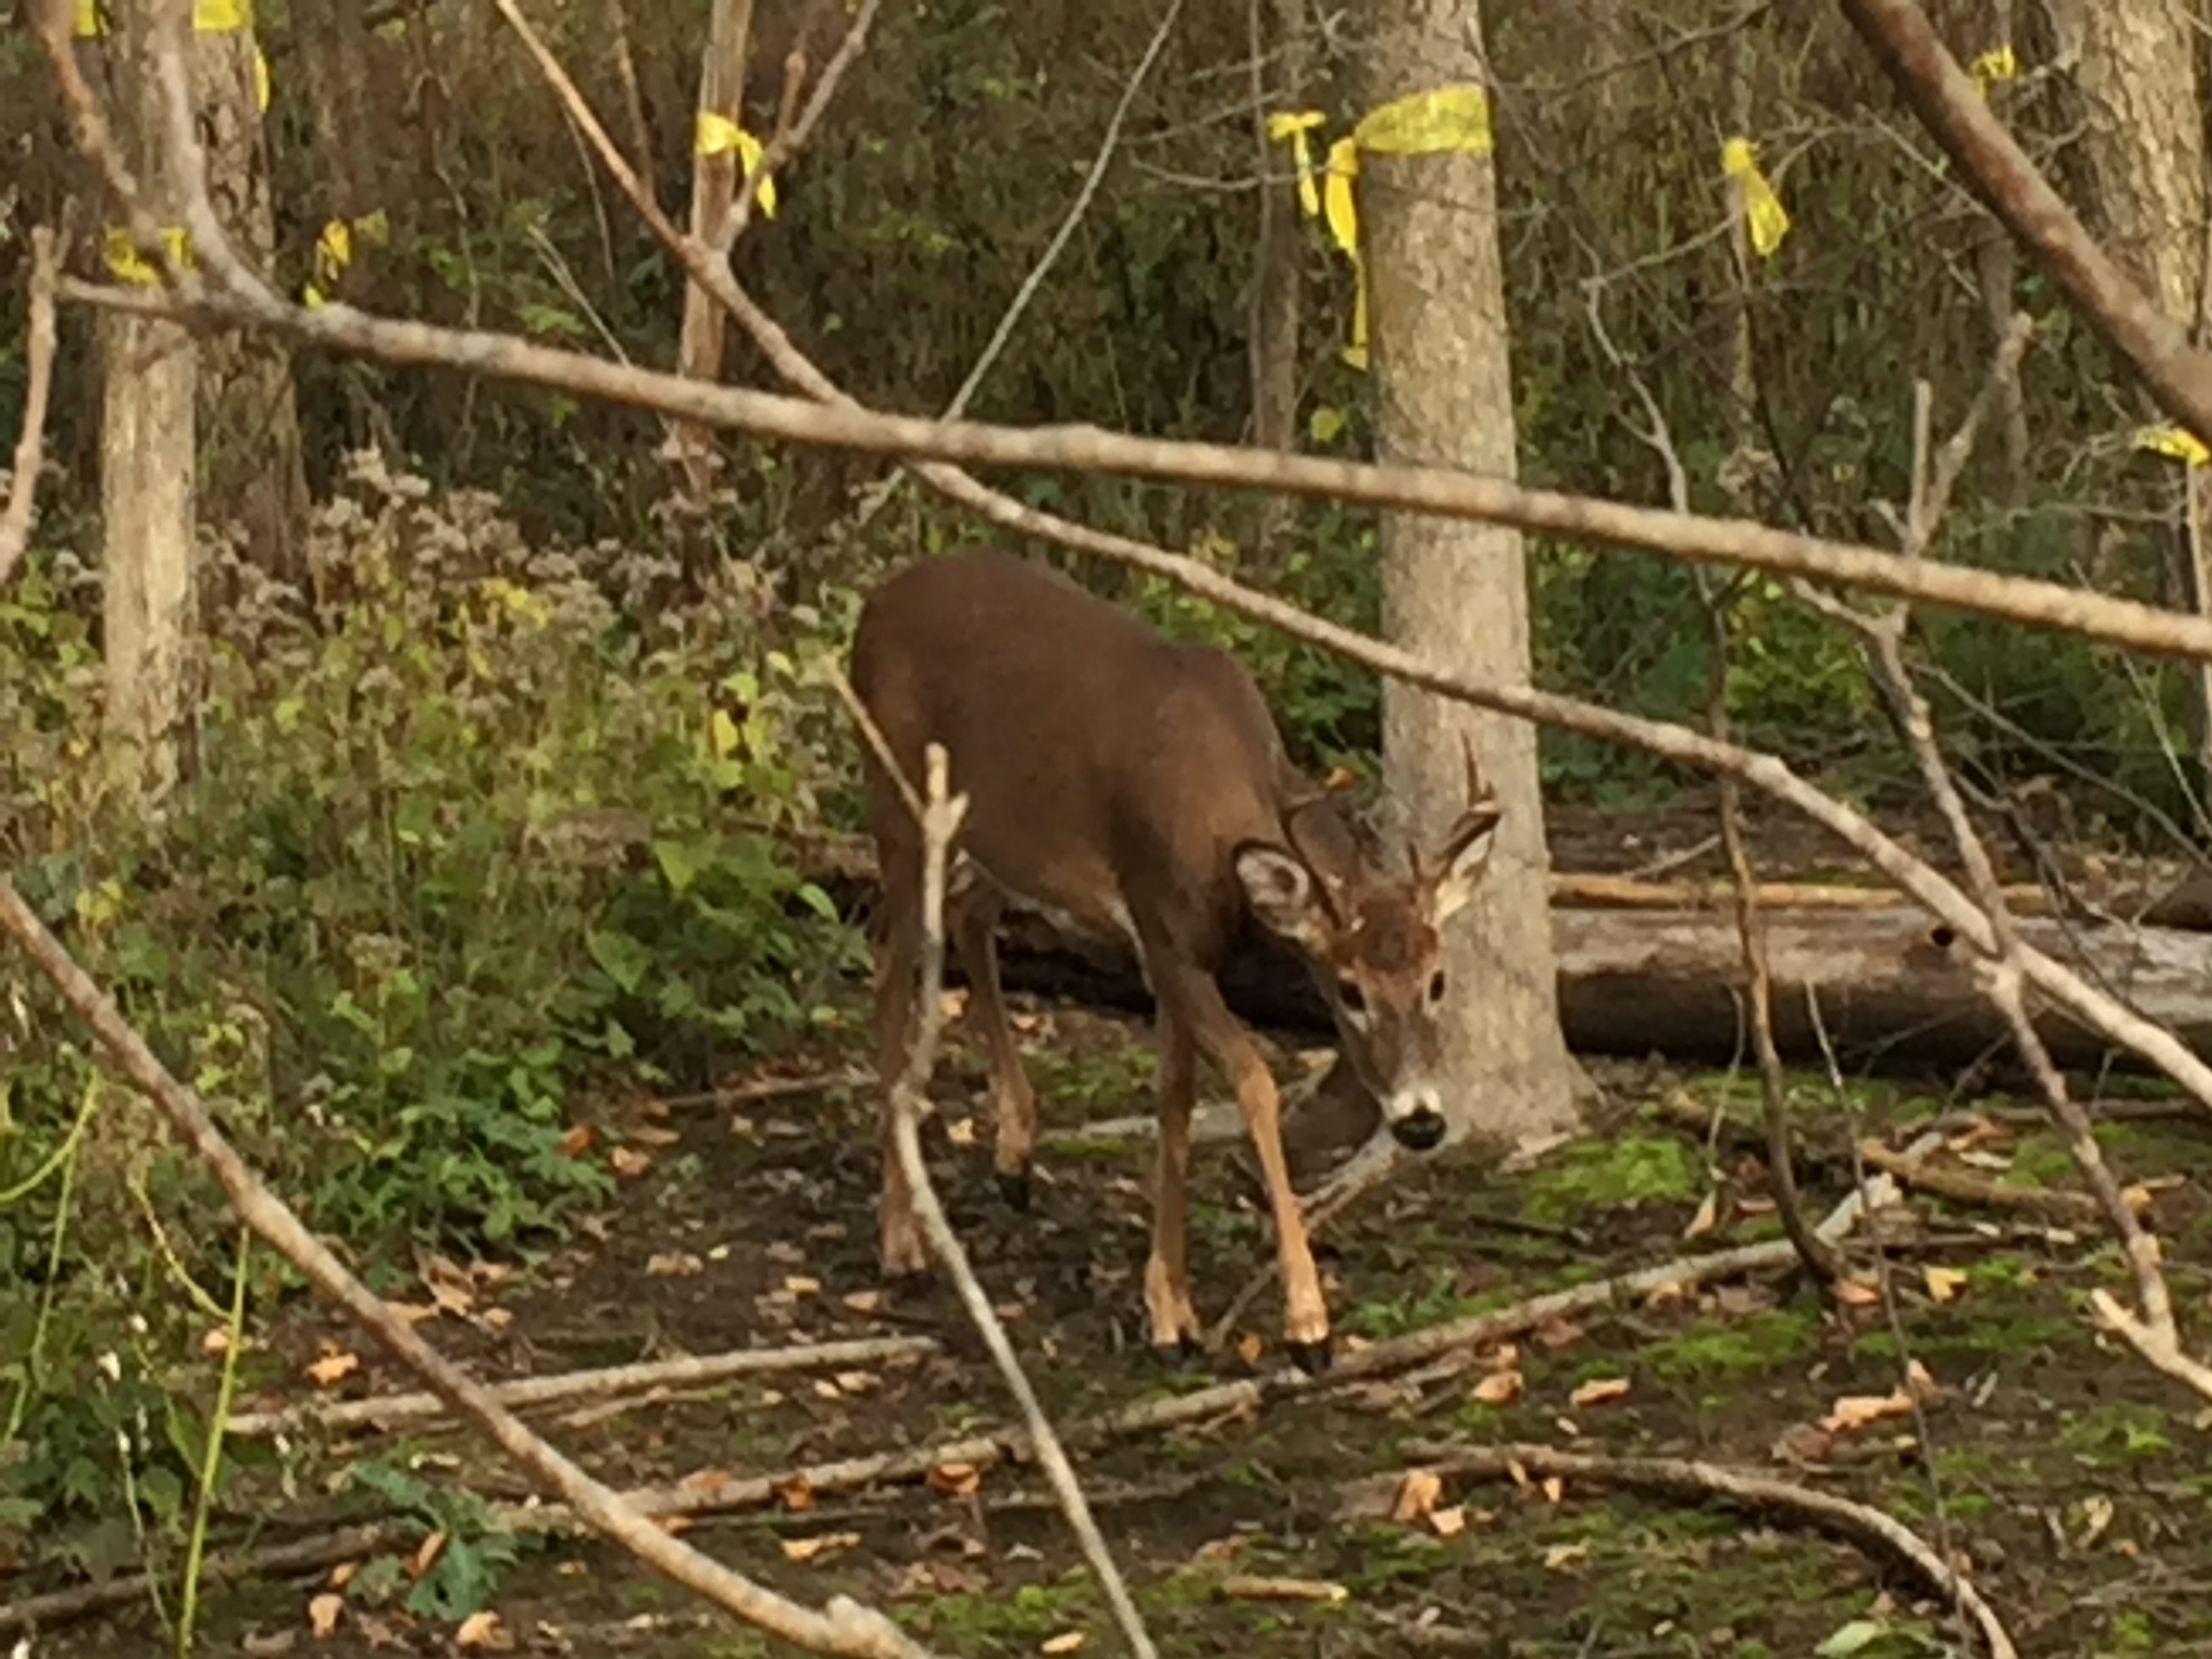 A buck walks in bare soil left behind by misuse of herbicide that killed all plants, including the hardwood trees marked for logging.